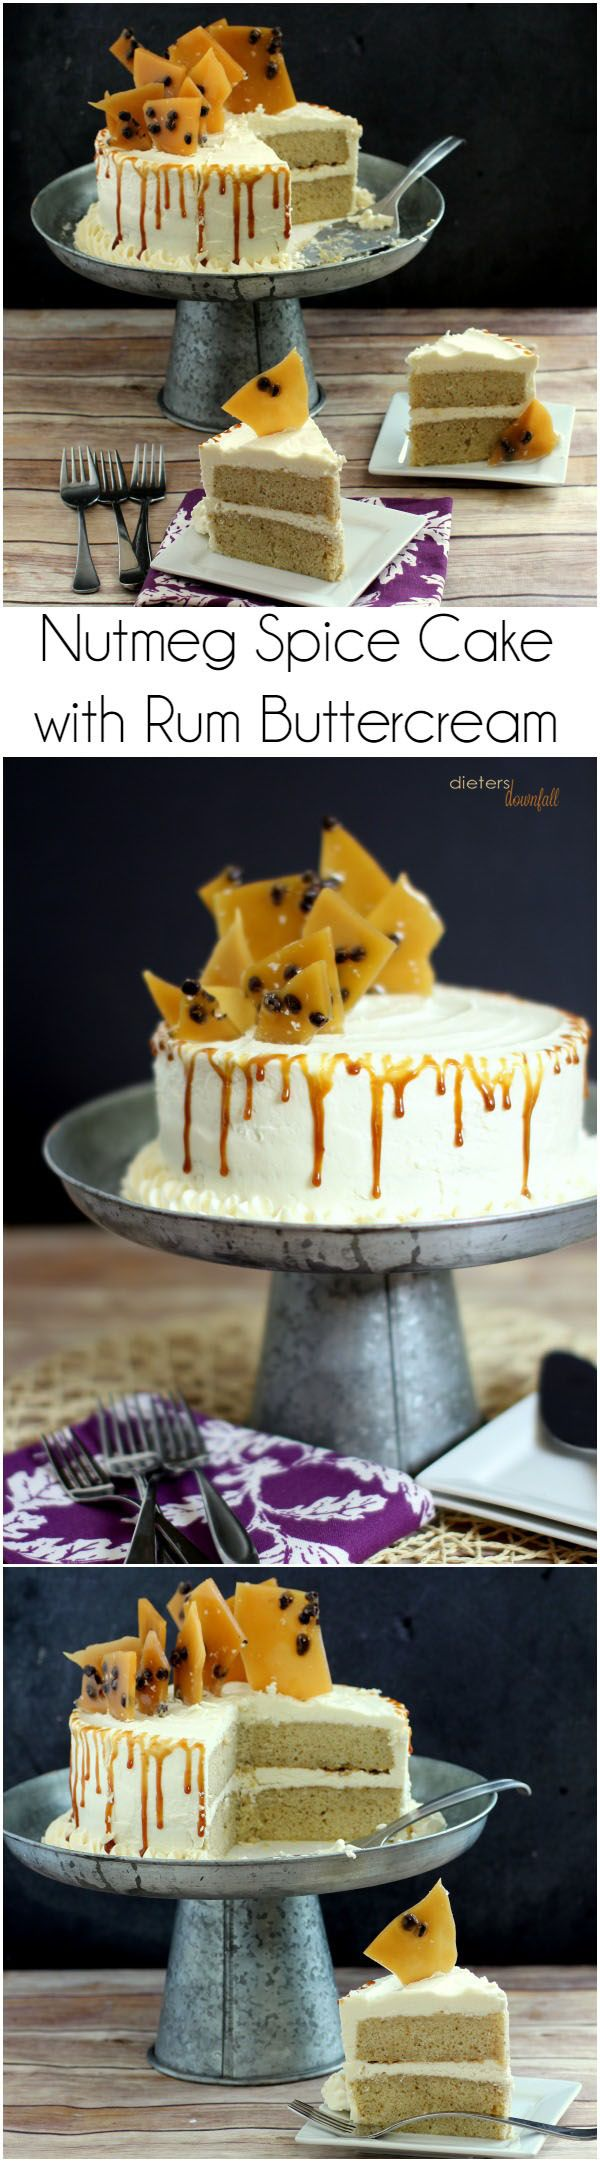 Nutmeg Spice Cake with Rum Buttercream and Toffee Shards